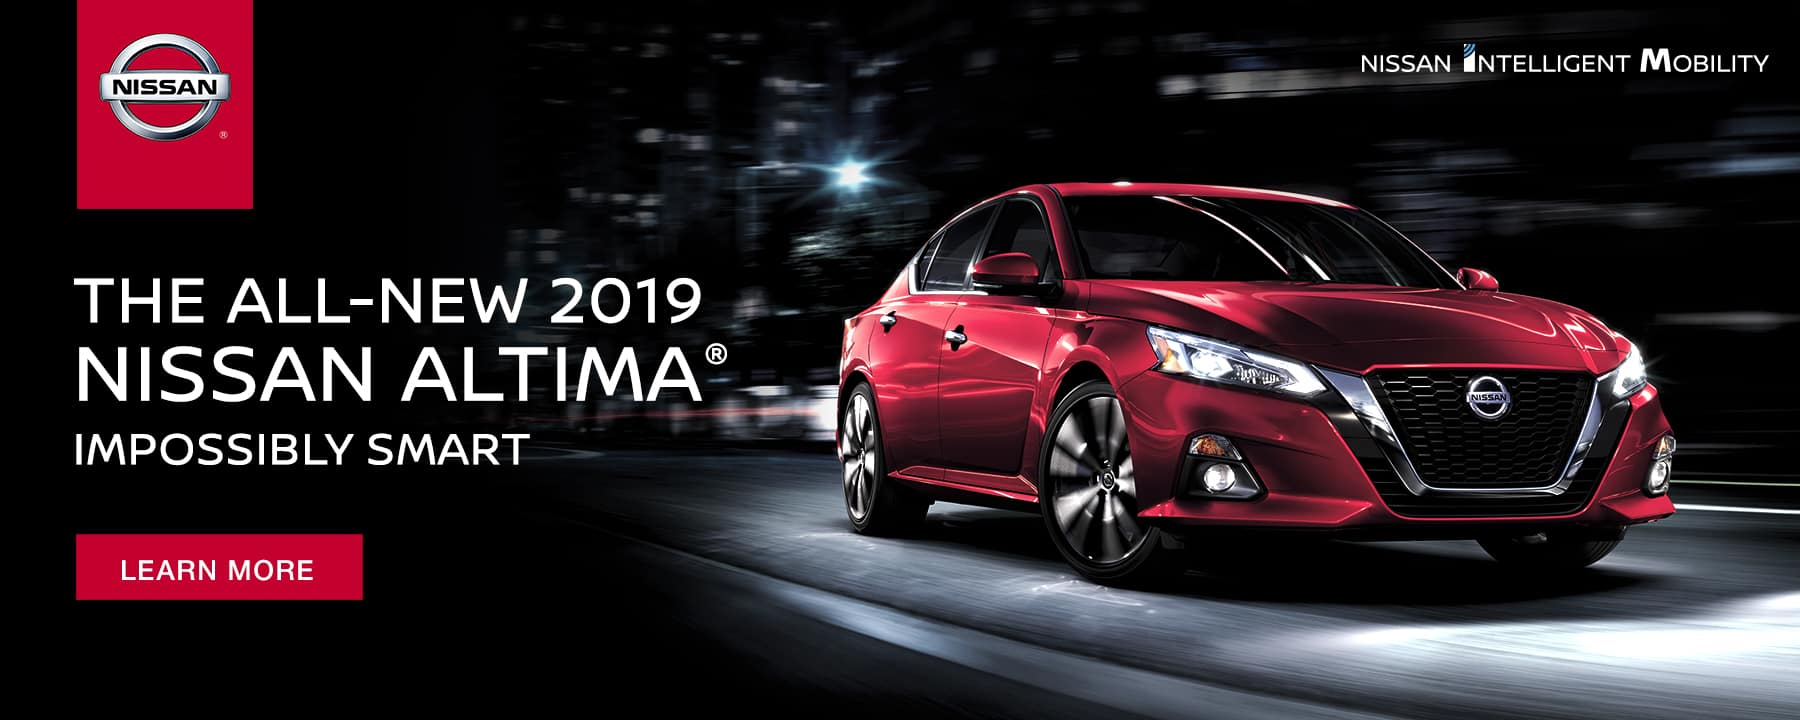 Introducing the all-new Nissan Altima! Order yours today at Berman Nissan of Chicago!